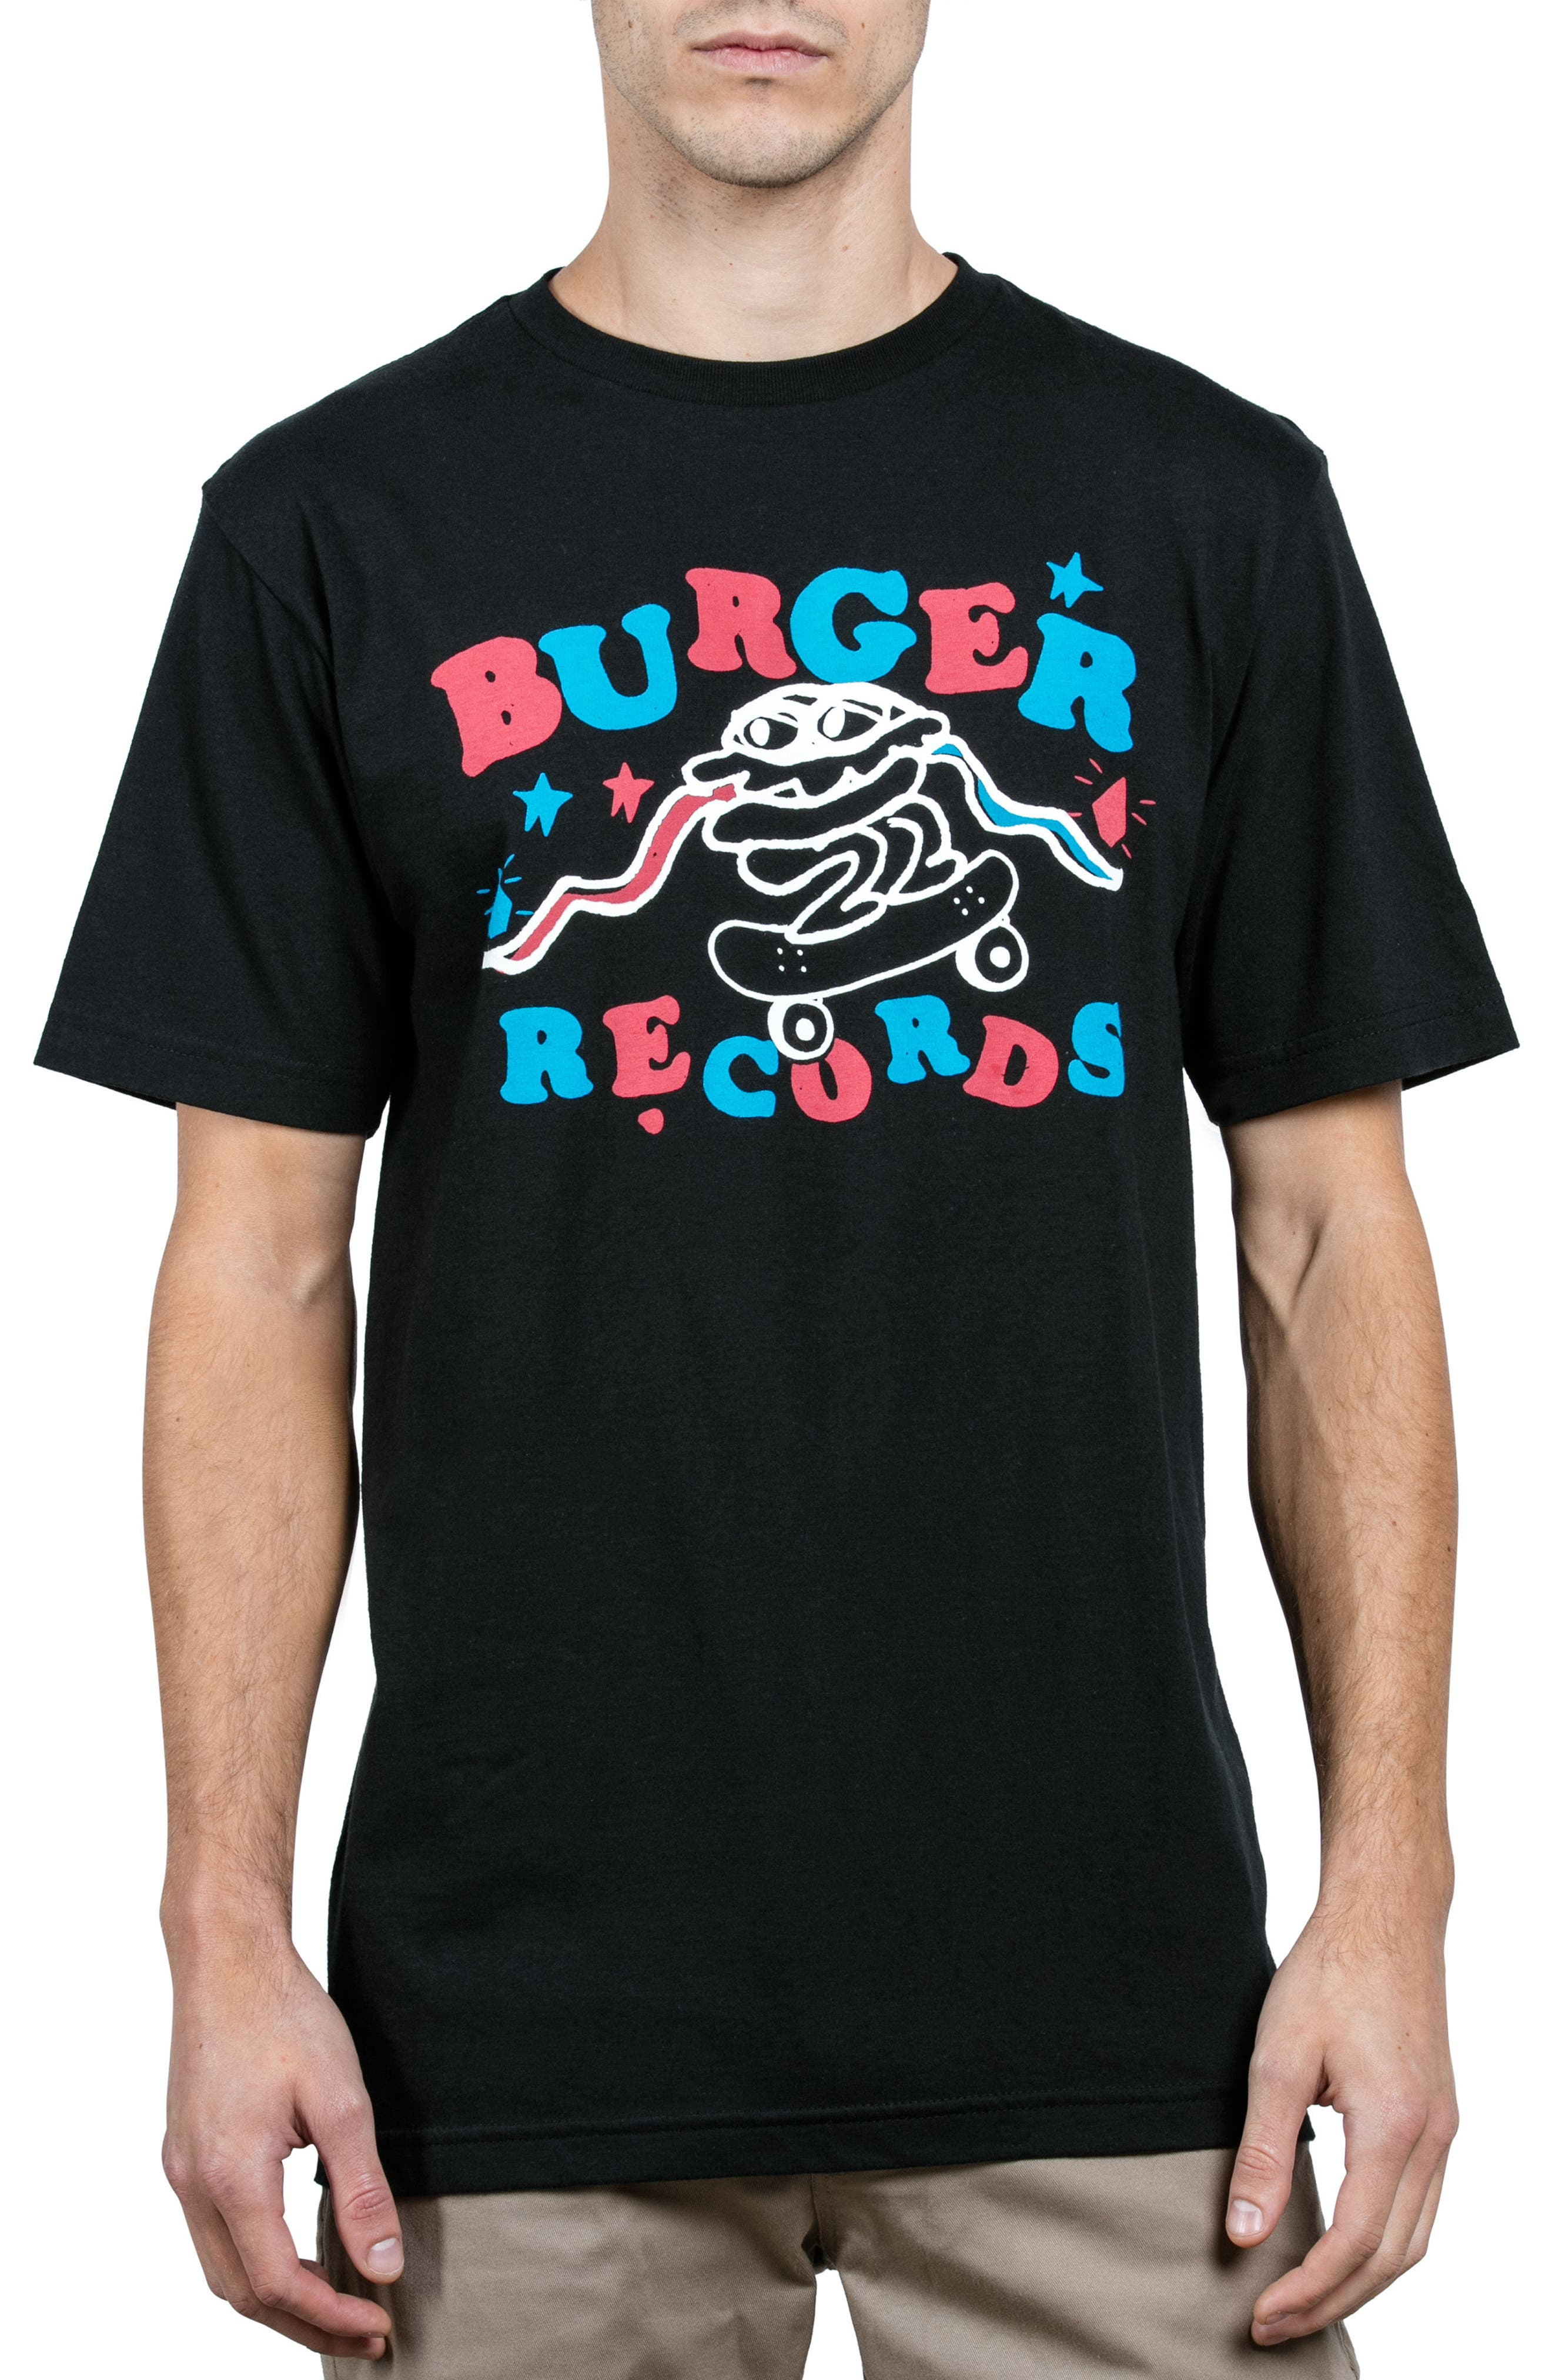 x Burger Records T-Shirt,                             Main thumbnail 1, color,                             001